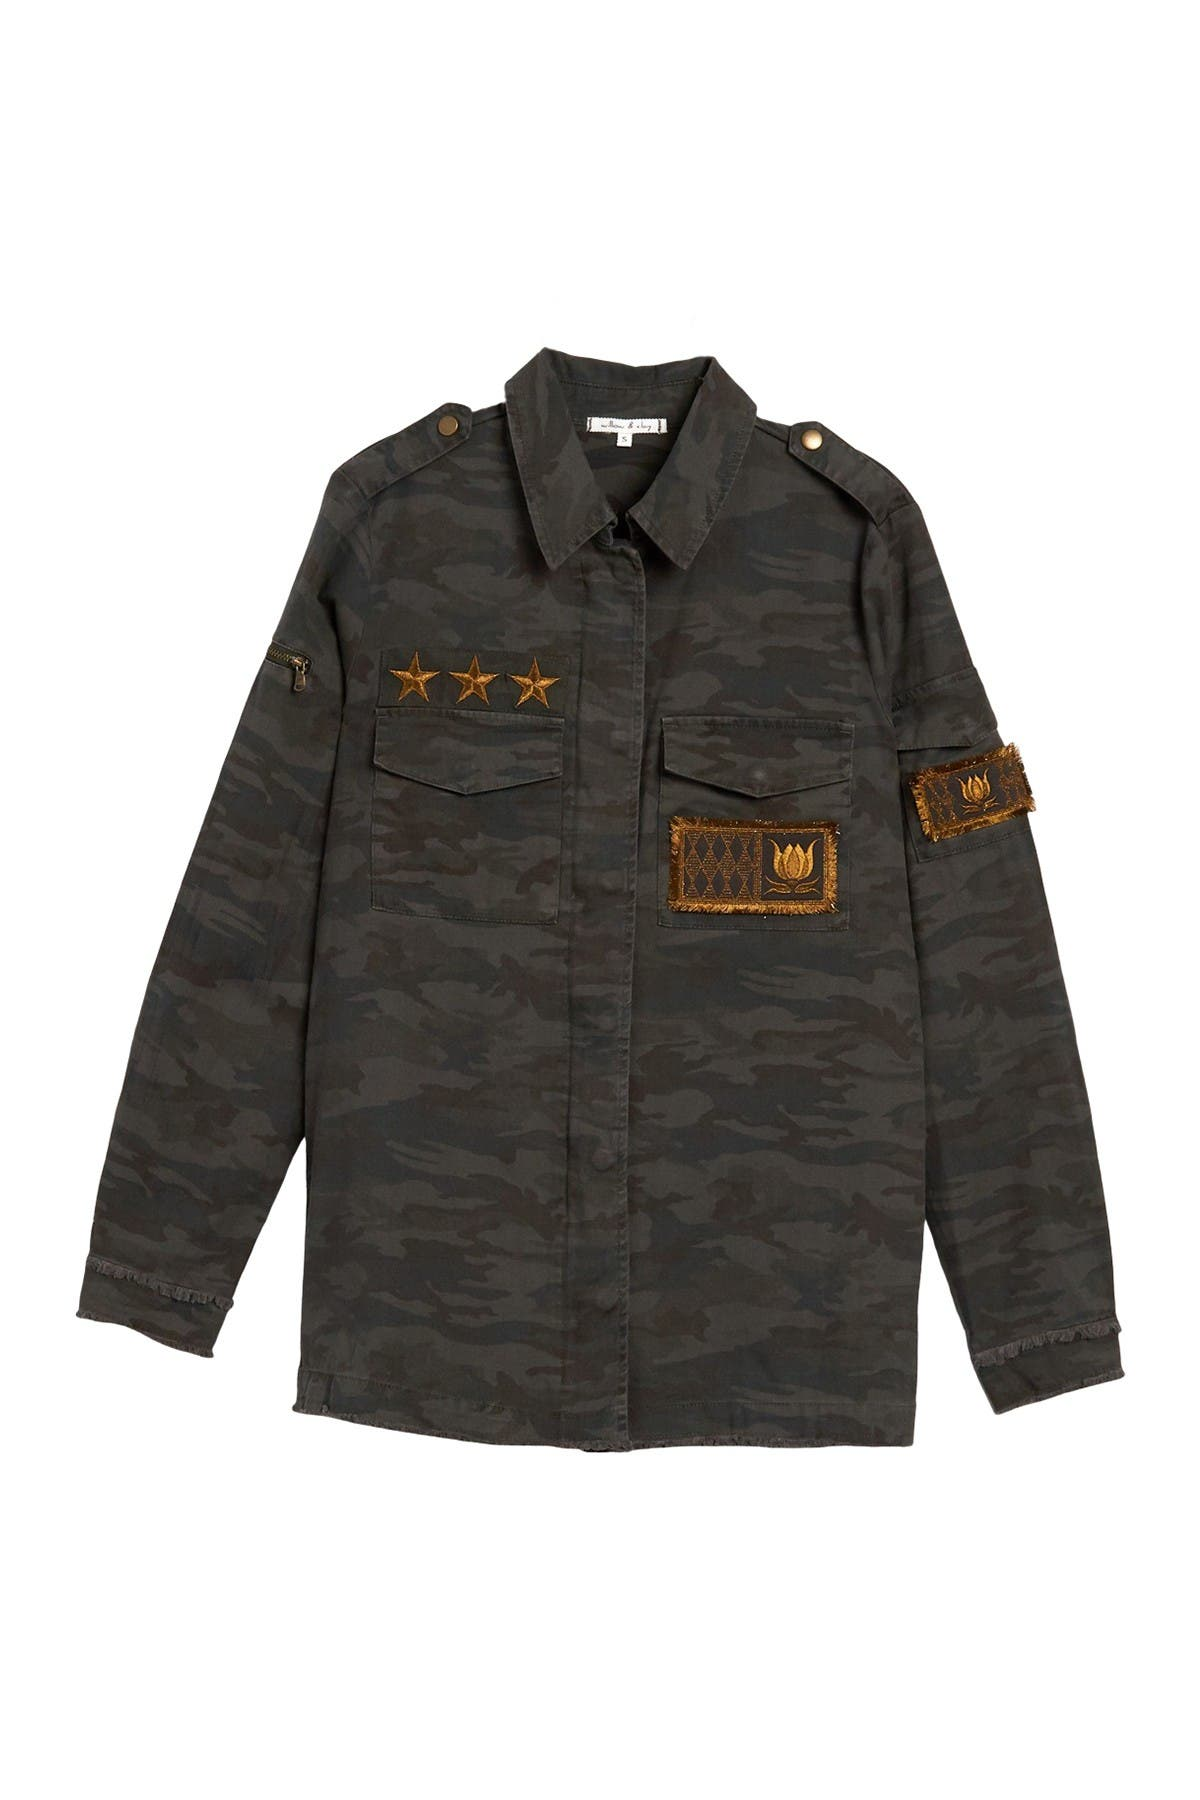 Image of Willow & Clay Military Jacket